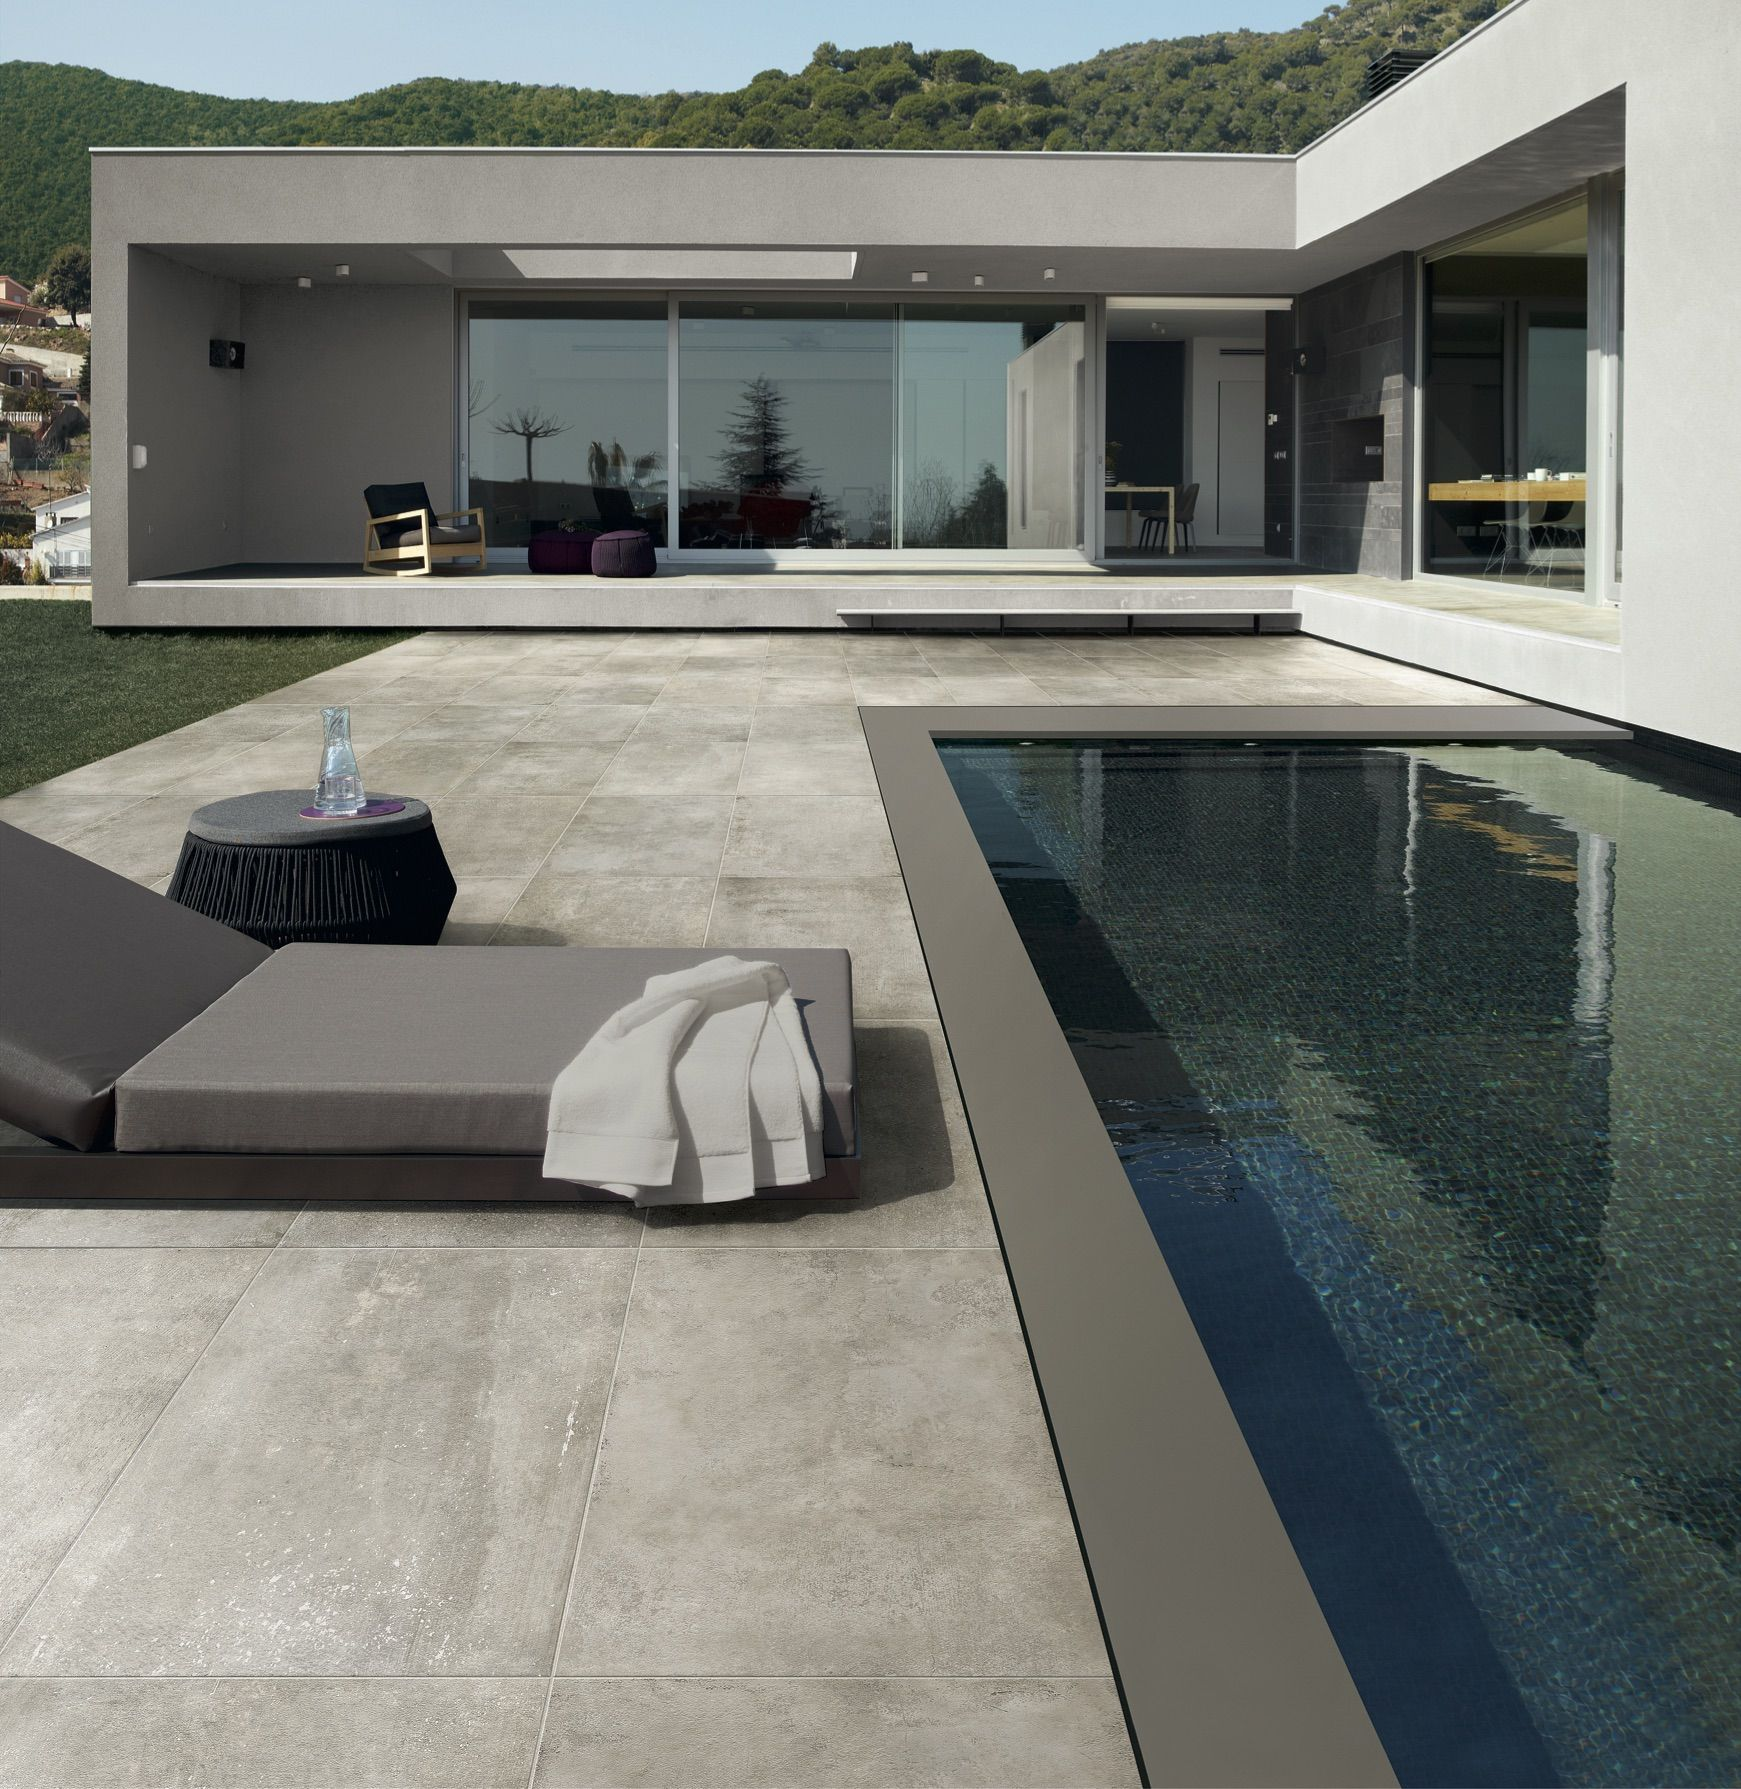 Envie d 39 habiller la plage de votre piscine voici un for Carrelage exterieur grande dimension